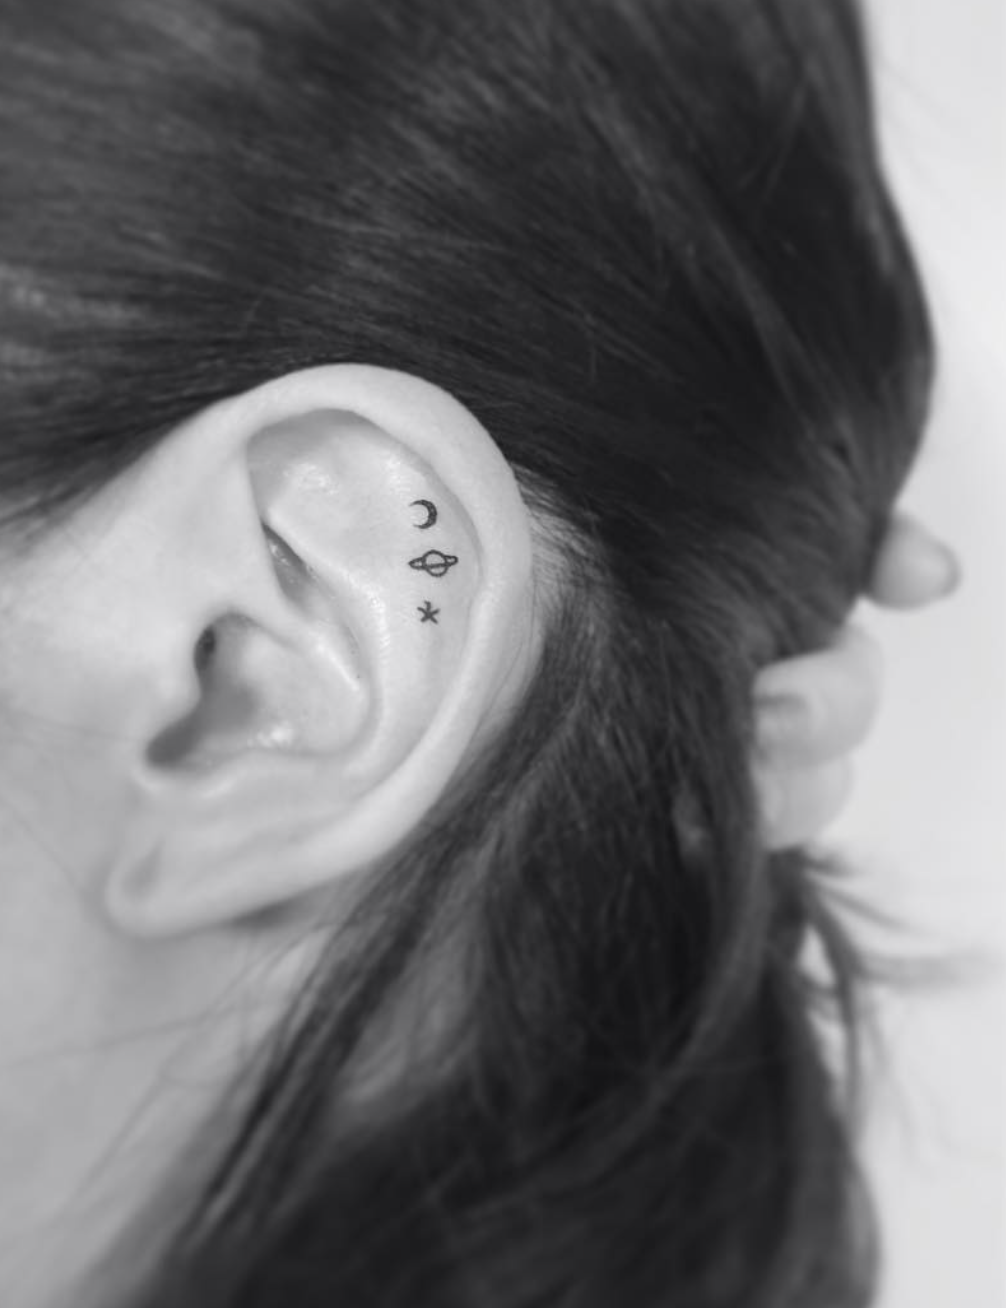 Tiny Inner Ear Tattoos You Ll Want Immediately